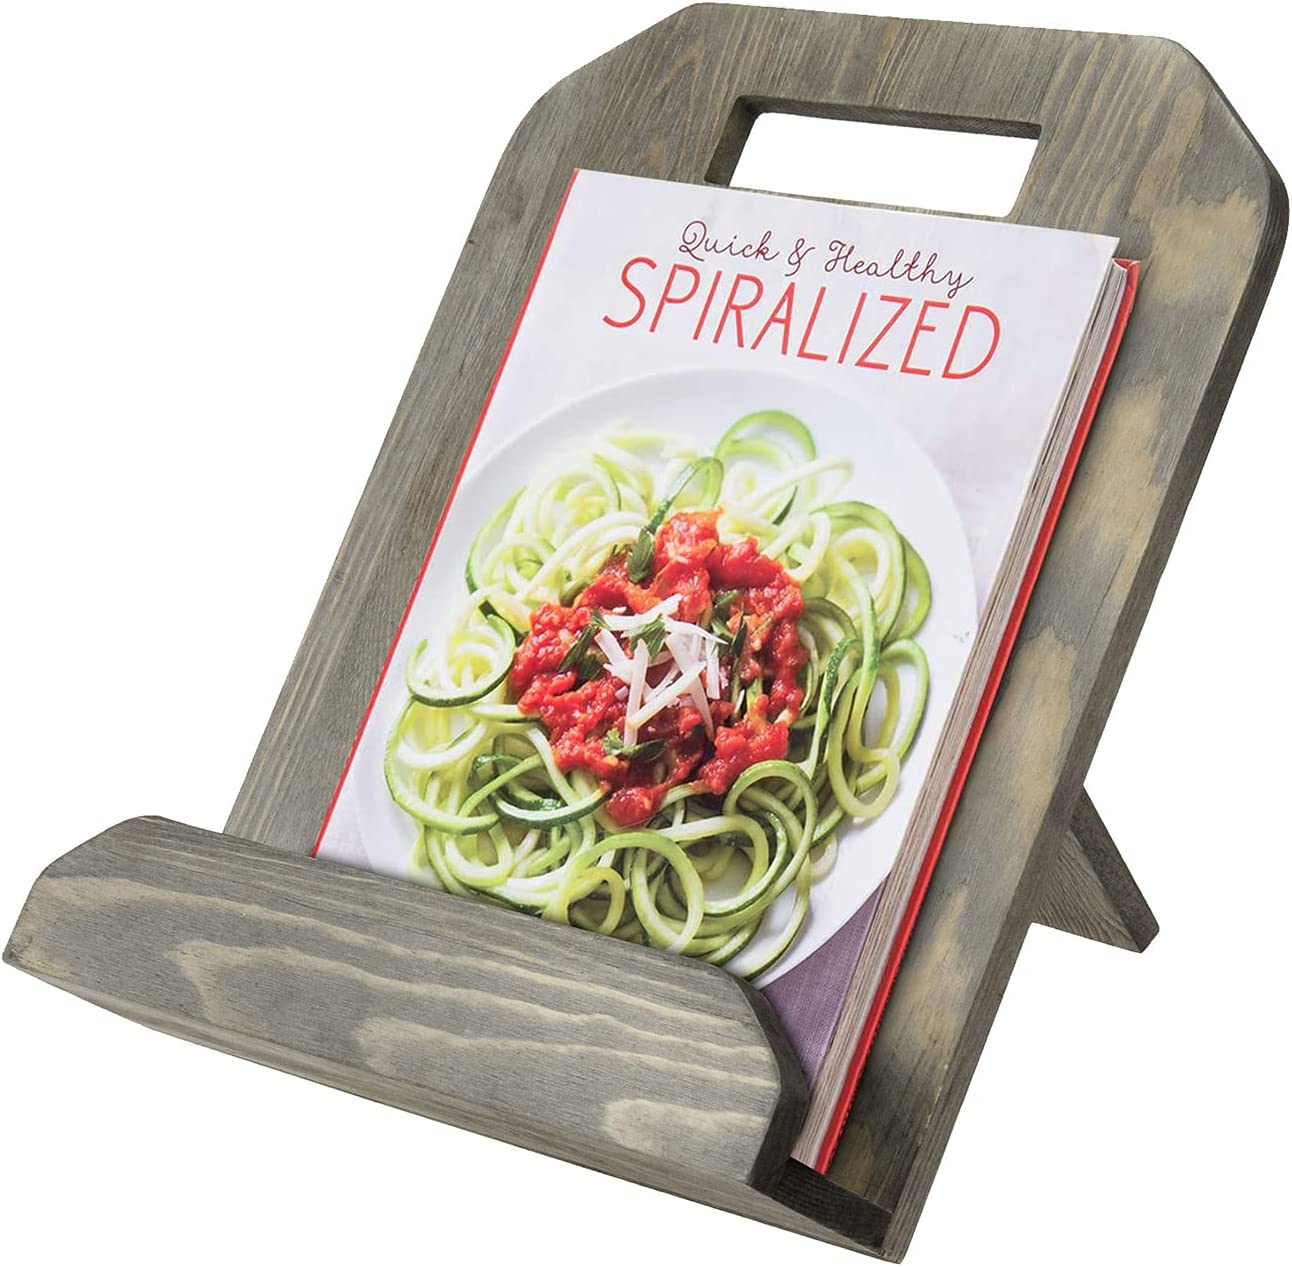 MyGift Vintage Gray Wood Cookbook Stand Cutting Board Shaped Kit